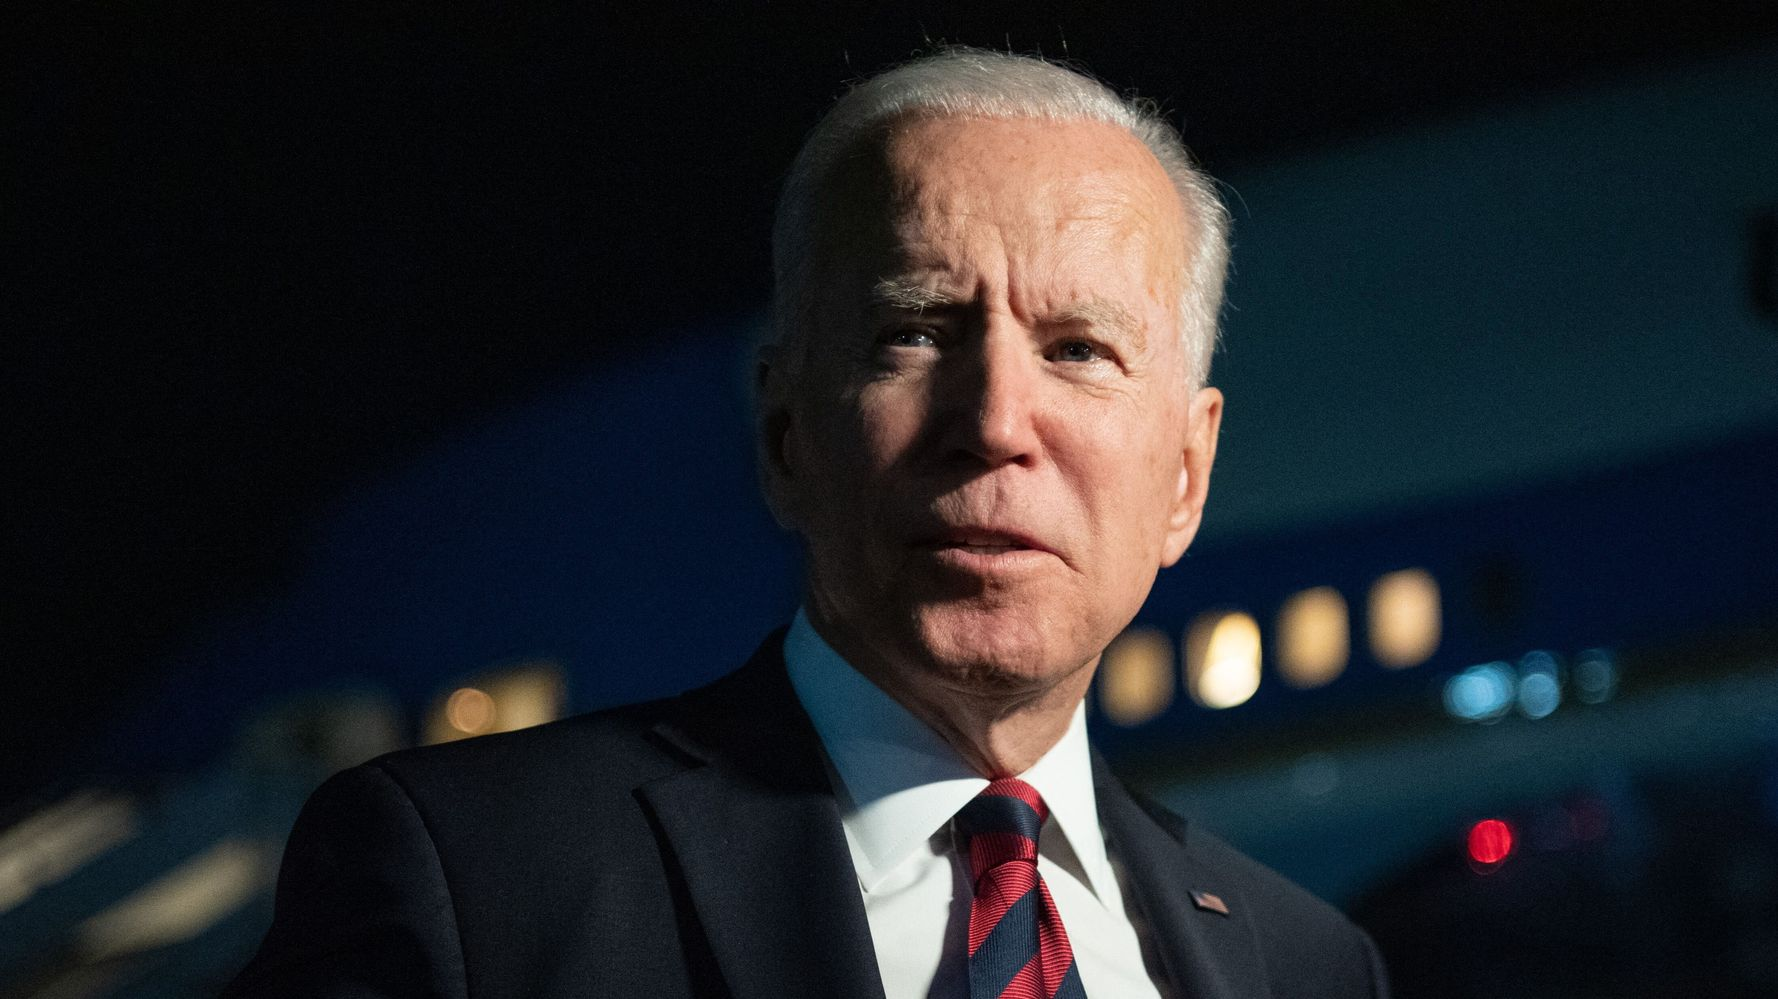 Biden Hopes For Full FDA Approval Of COVID-19 Vaccines 'Soon'; Jabs For Kids May Follow